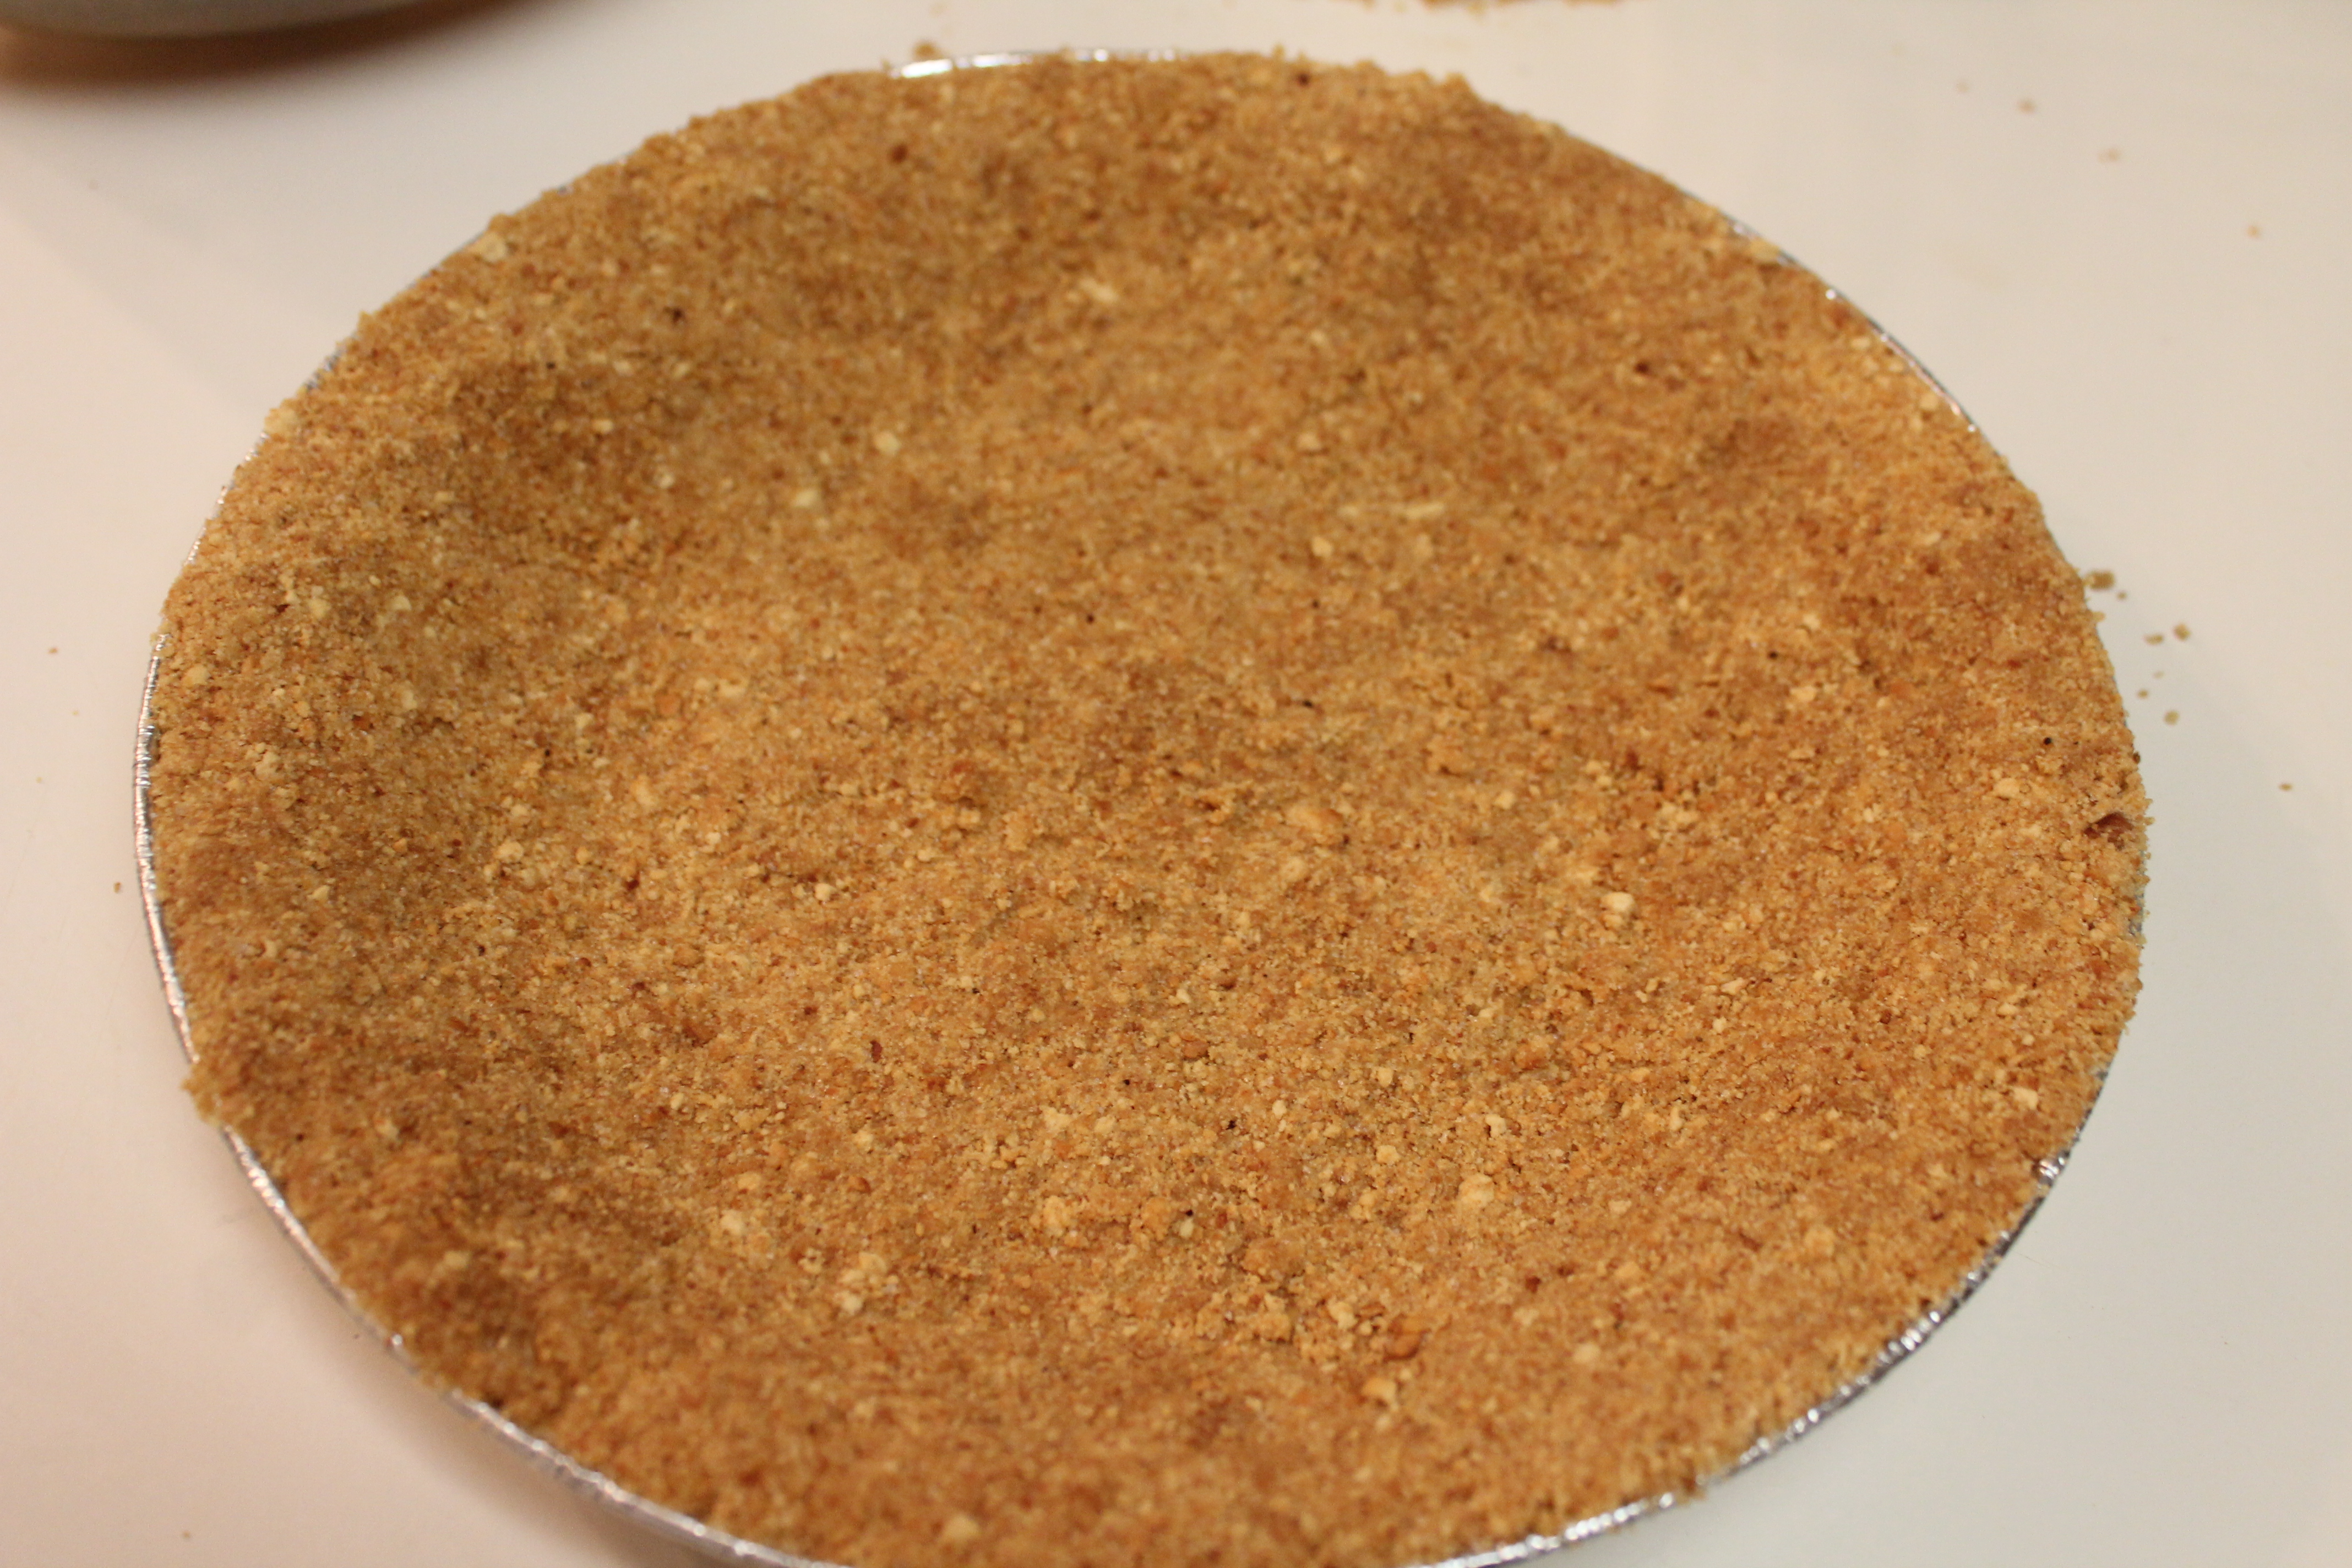 You can get the recipe for a graham cracker crust here!